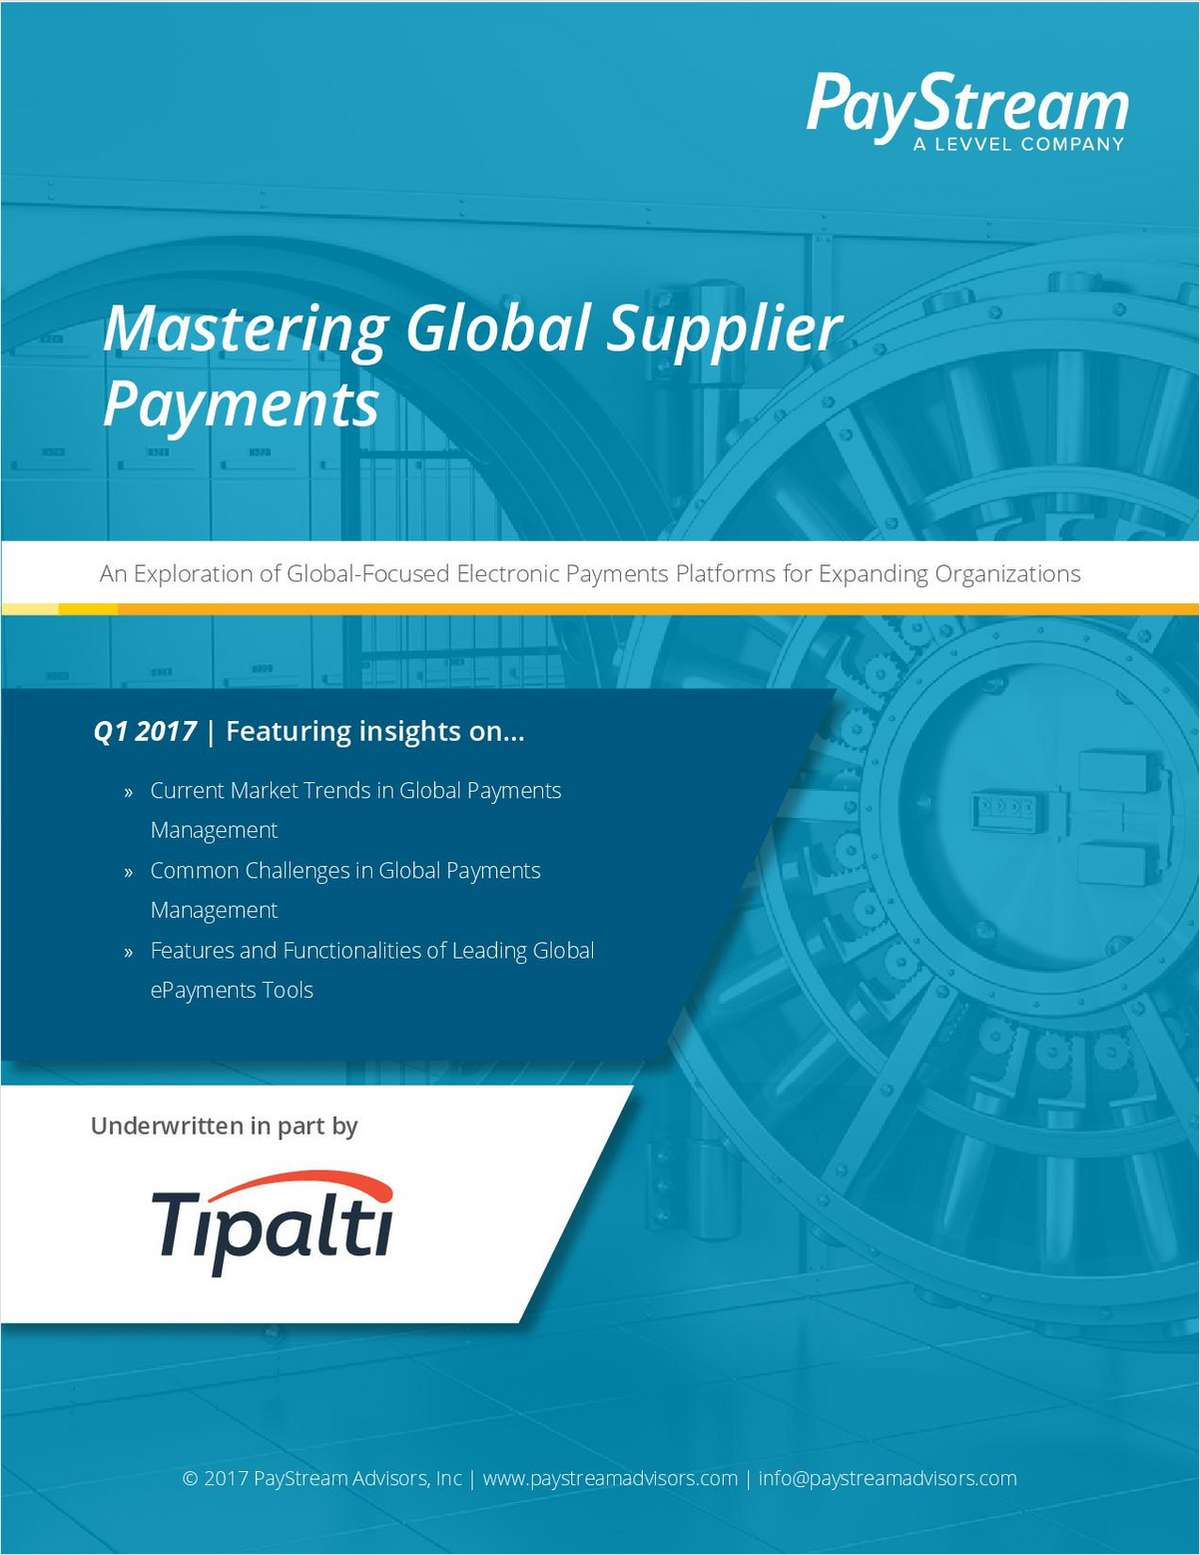 Mastering Cross-Border Supplier Payments